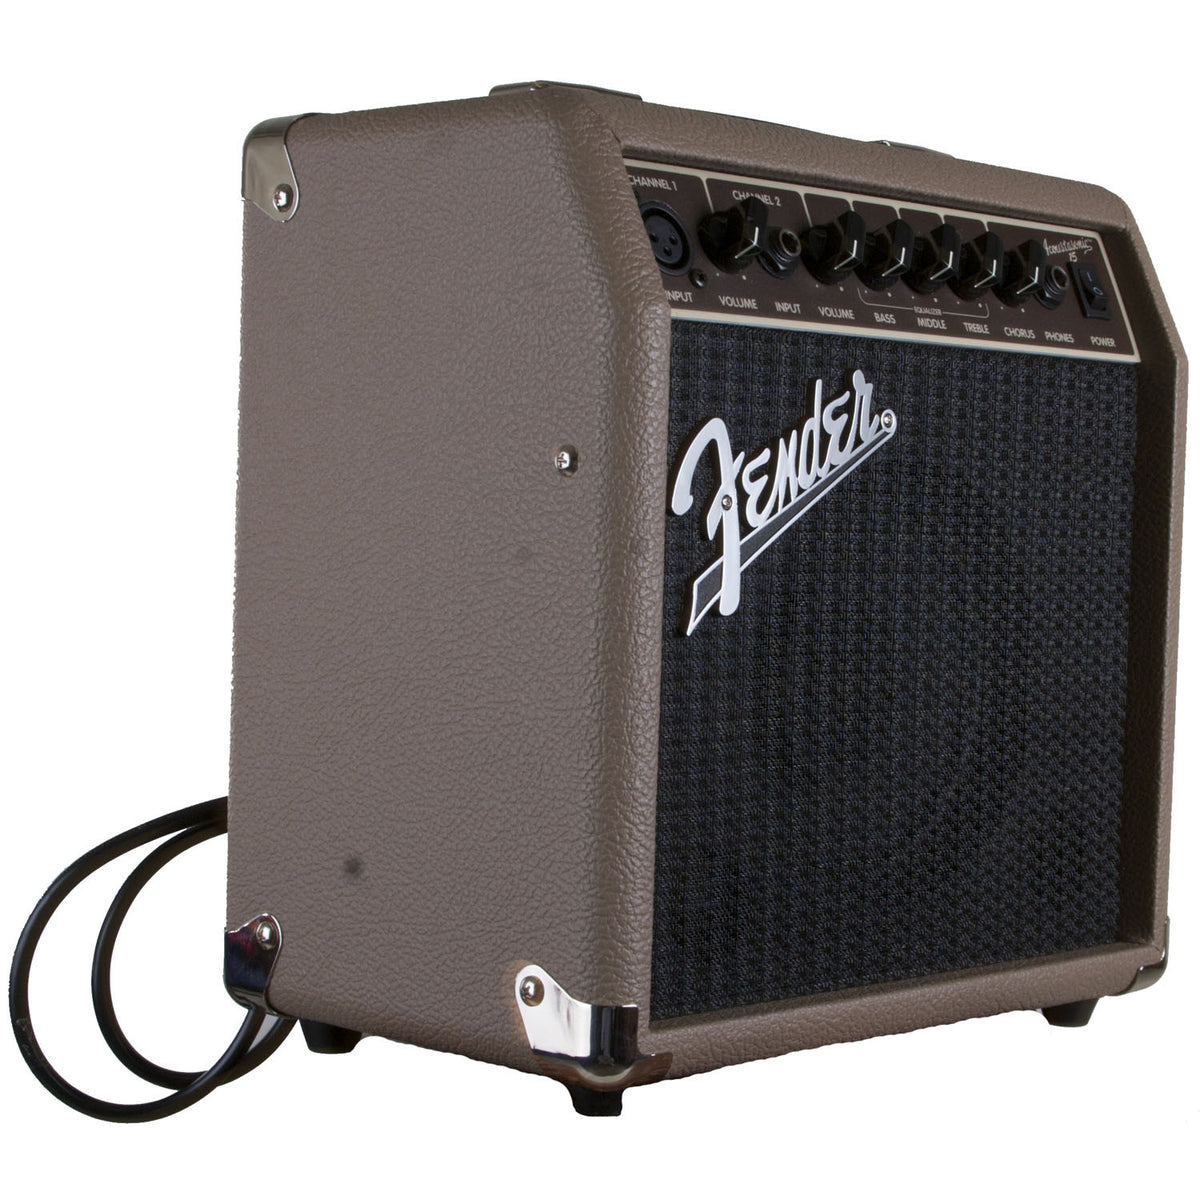 Fender Amp Acoustasonic 15 Brown 15W 1x6 - Garrett Park Guitars  - 1